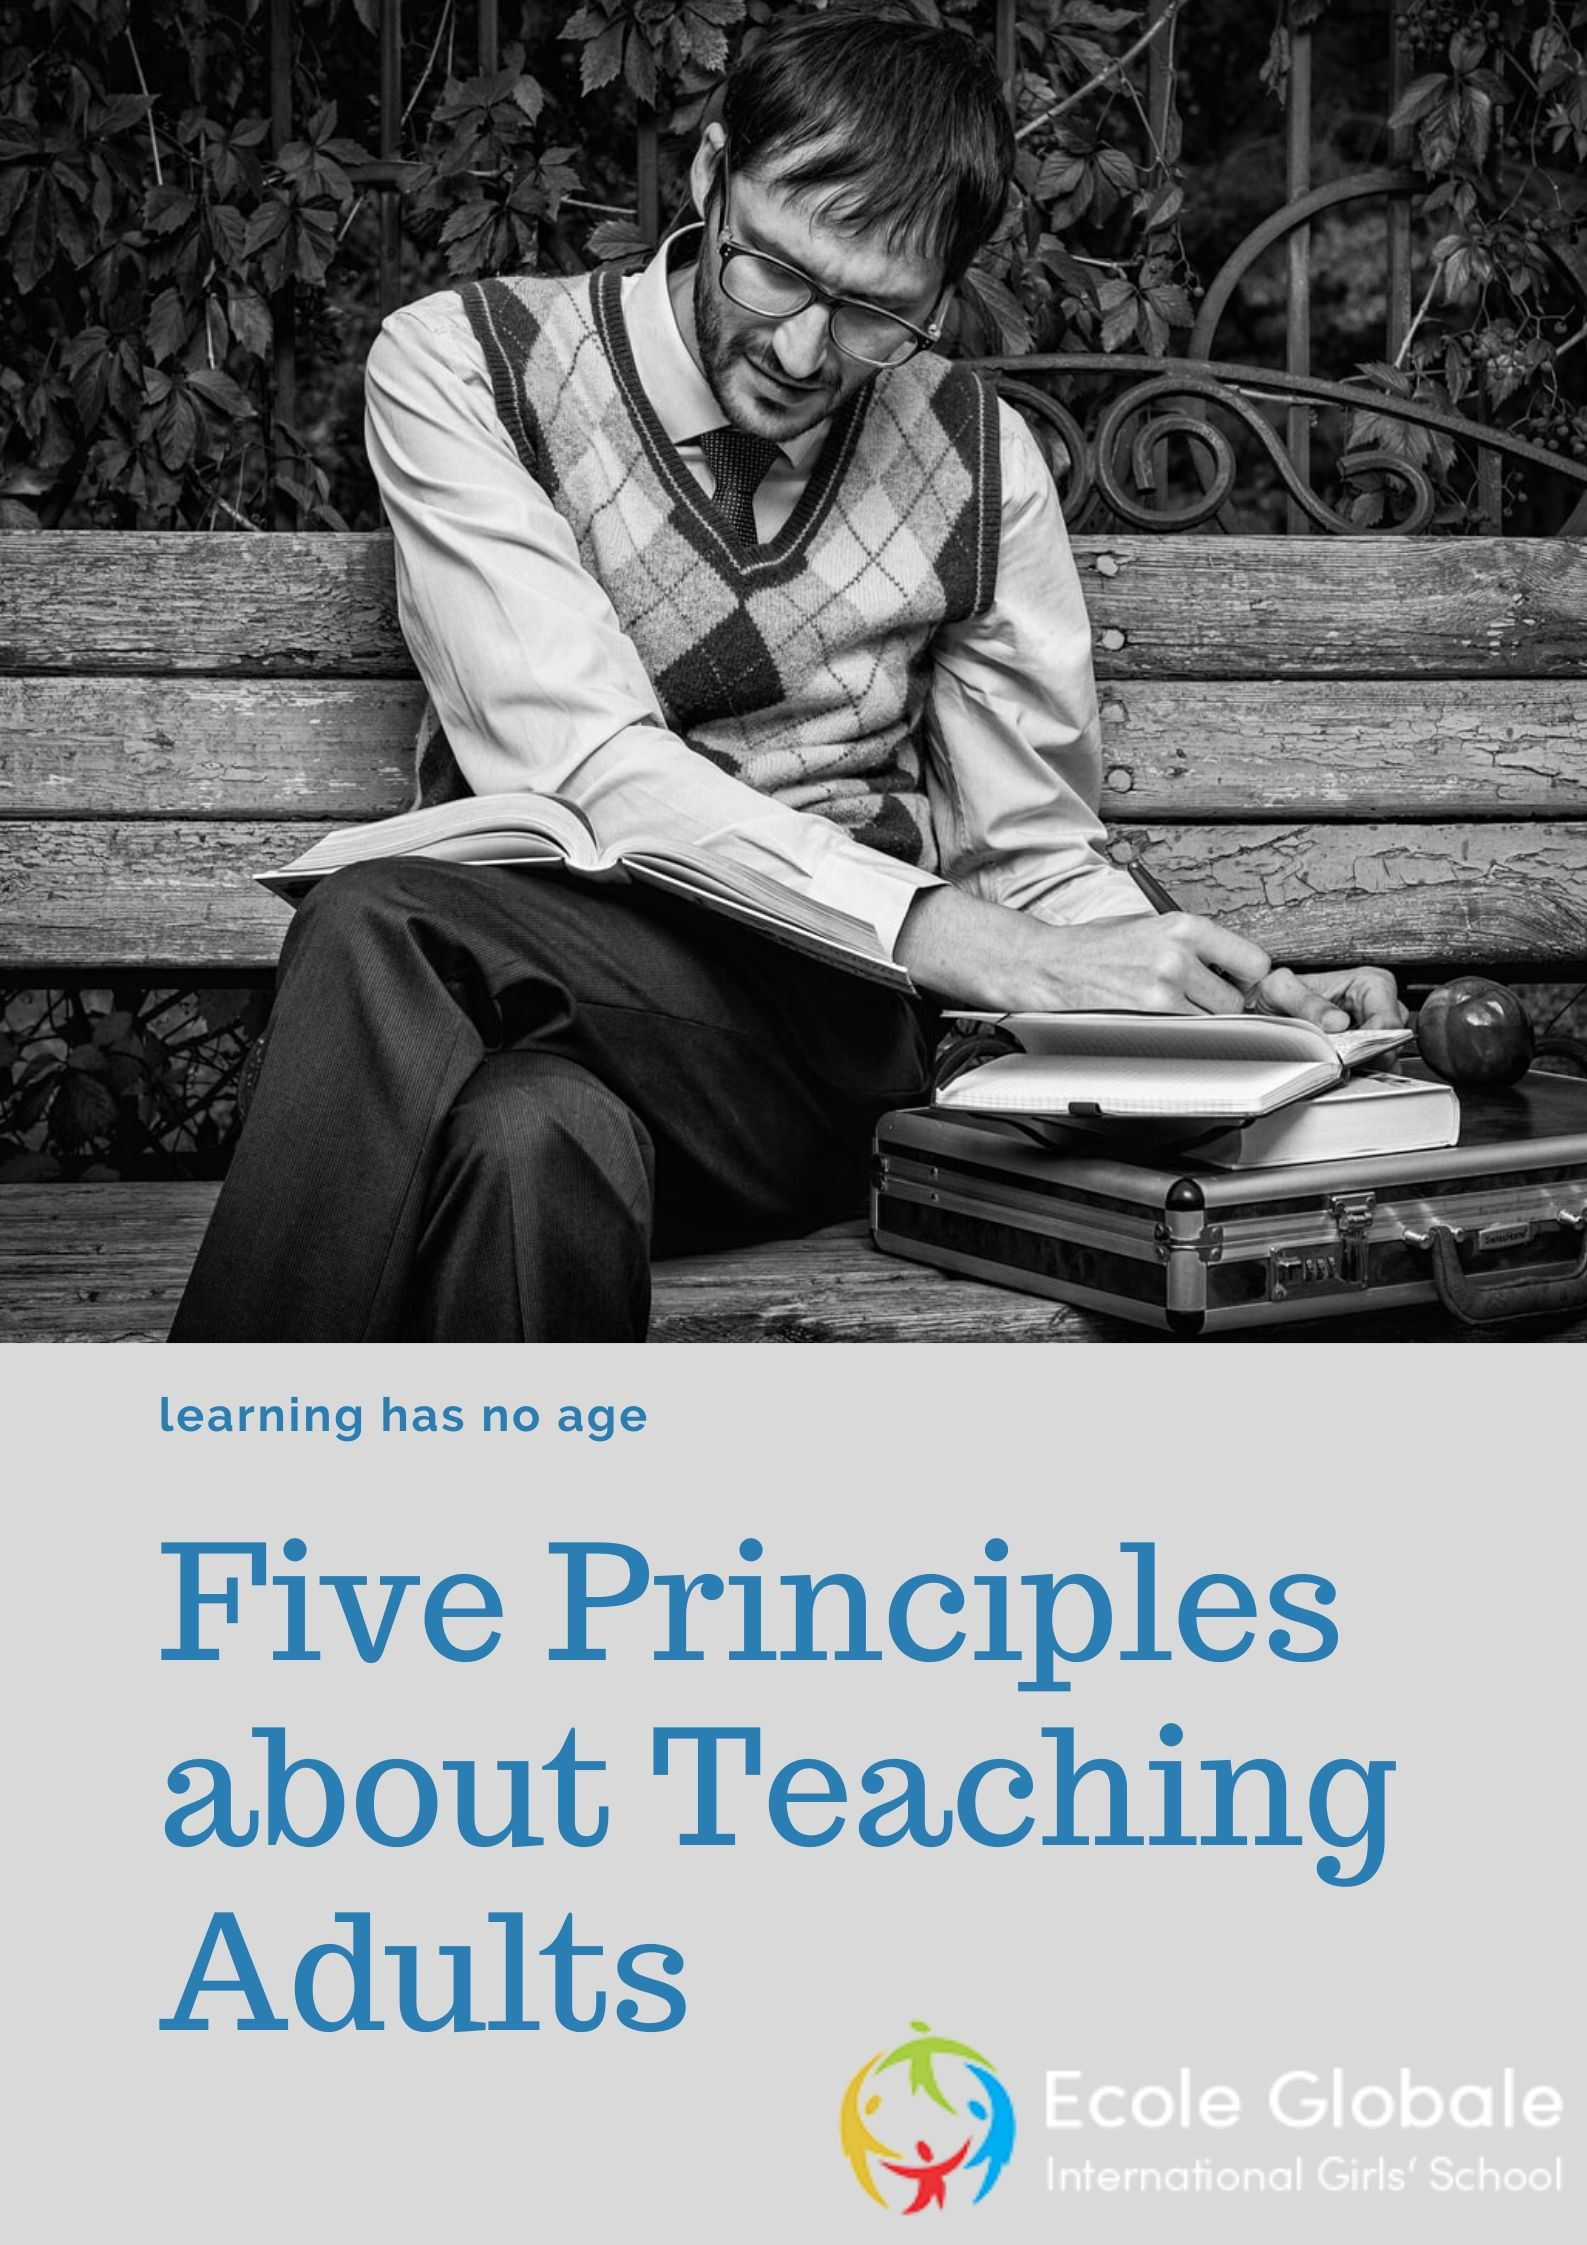 Five Principles about Teaching Adults